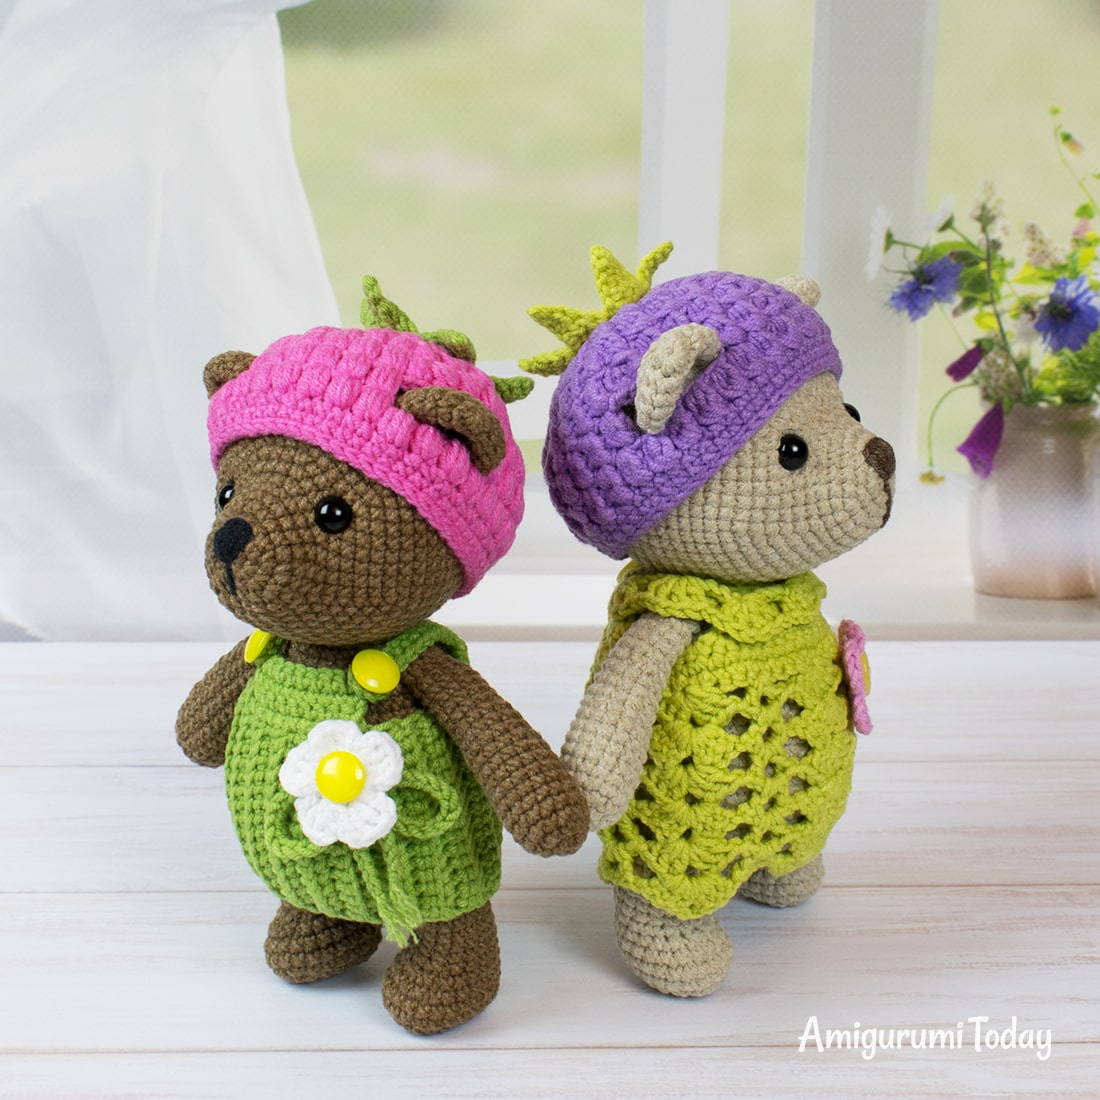 Blackberry bear crochet pattern by Amigurumi Today